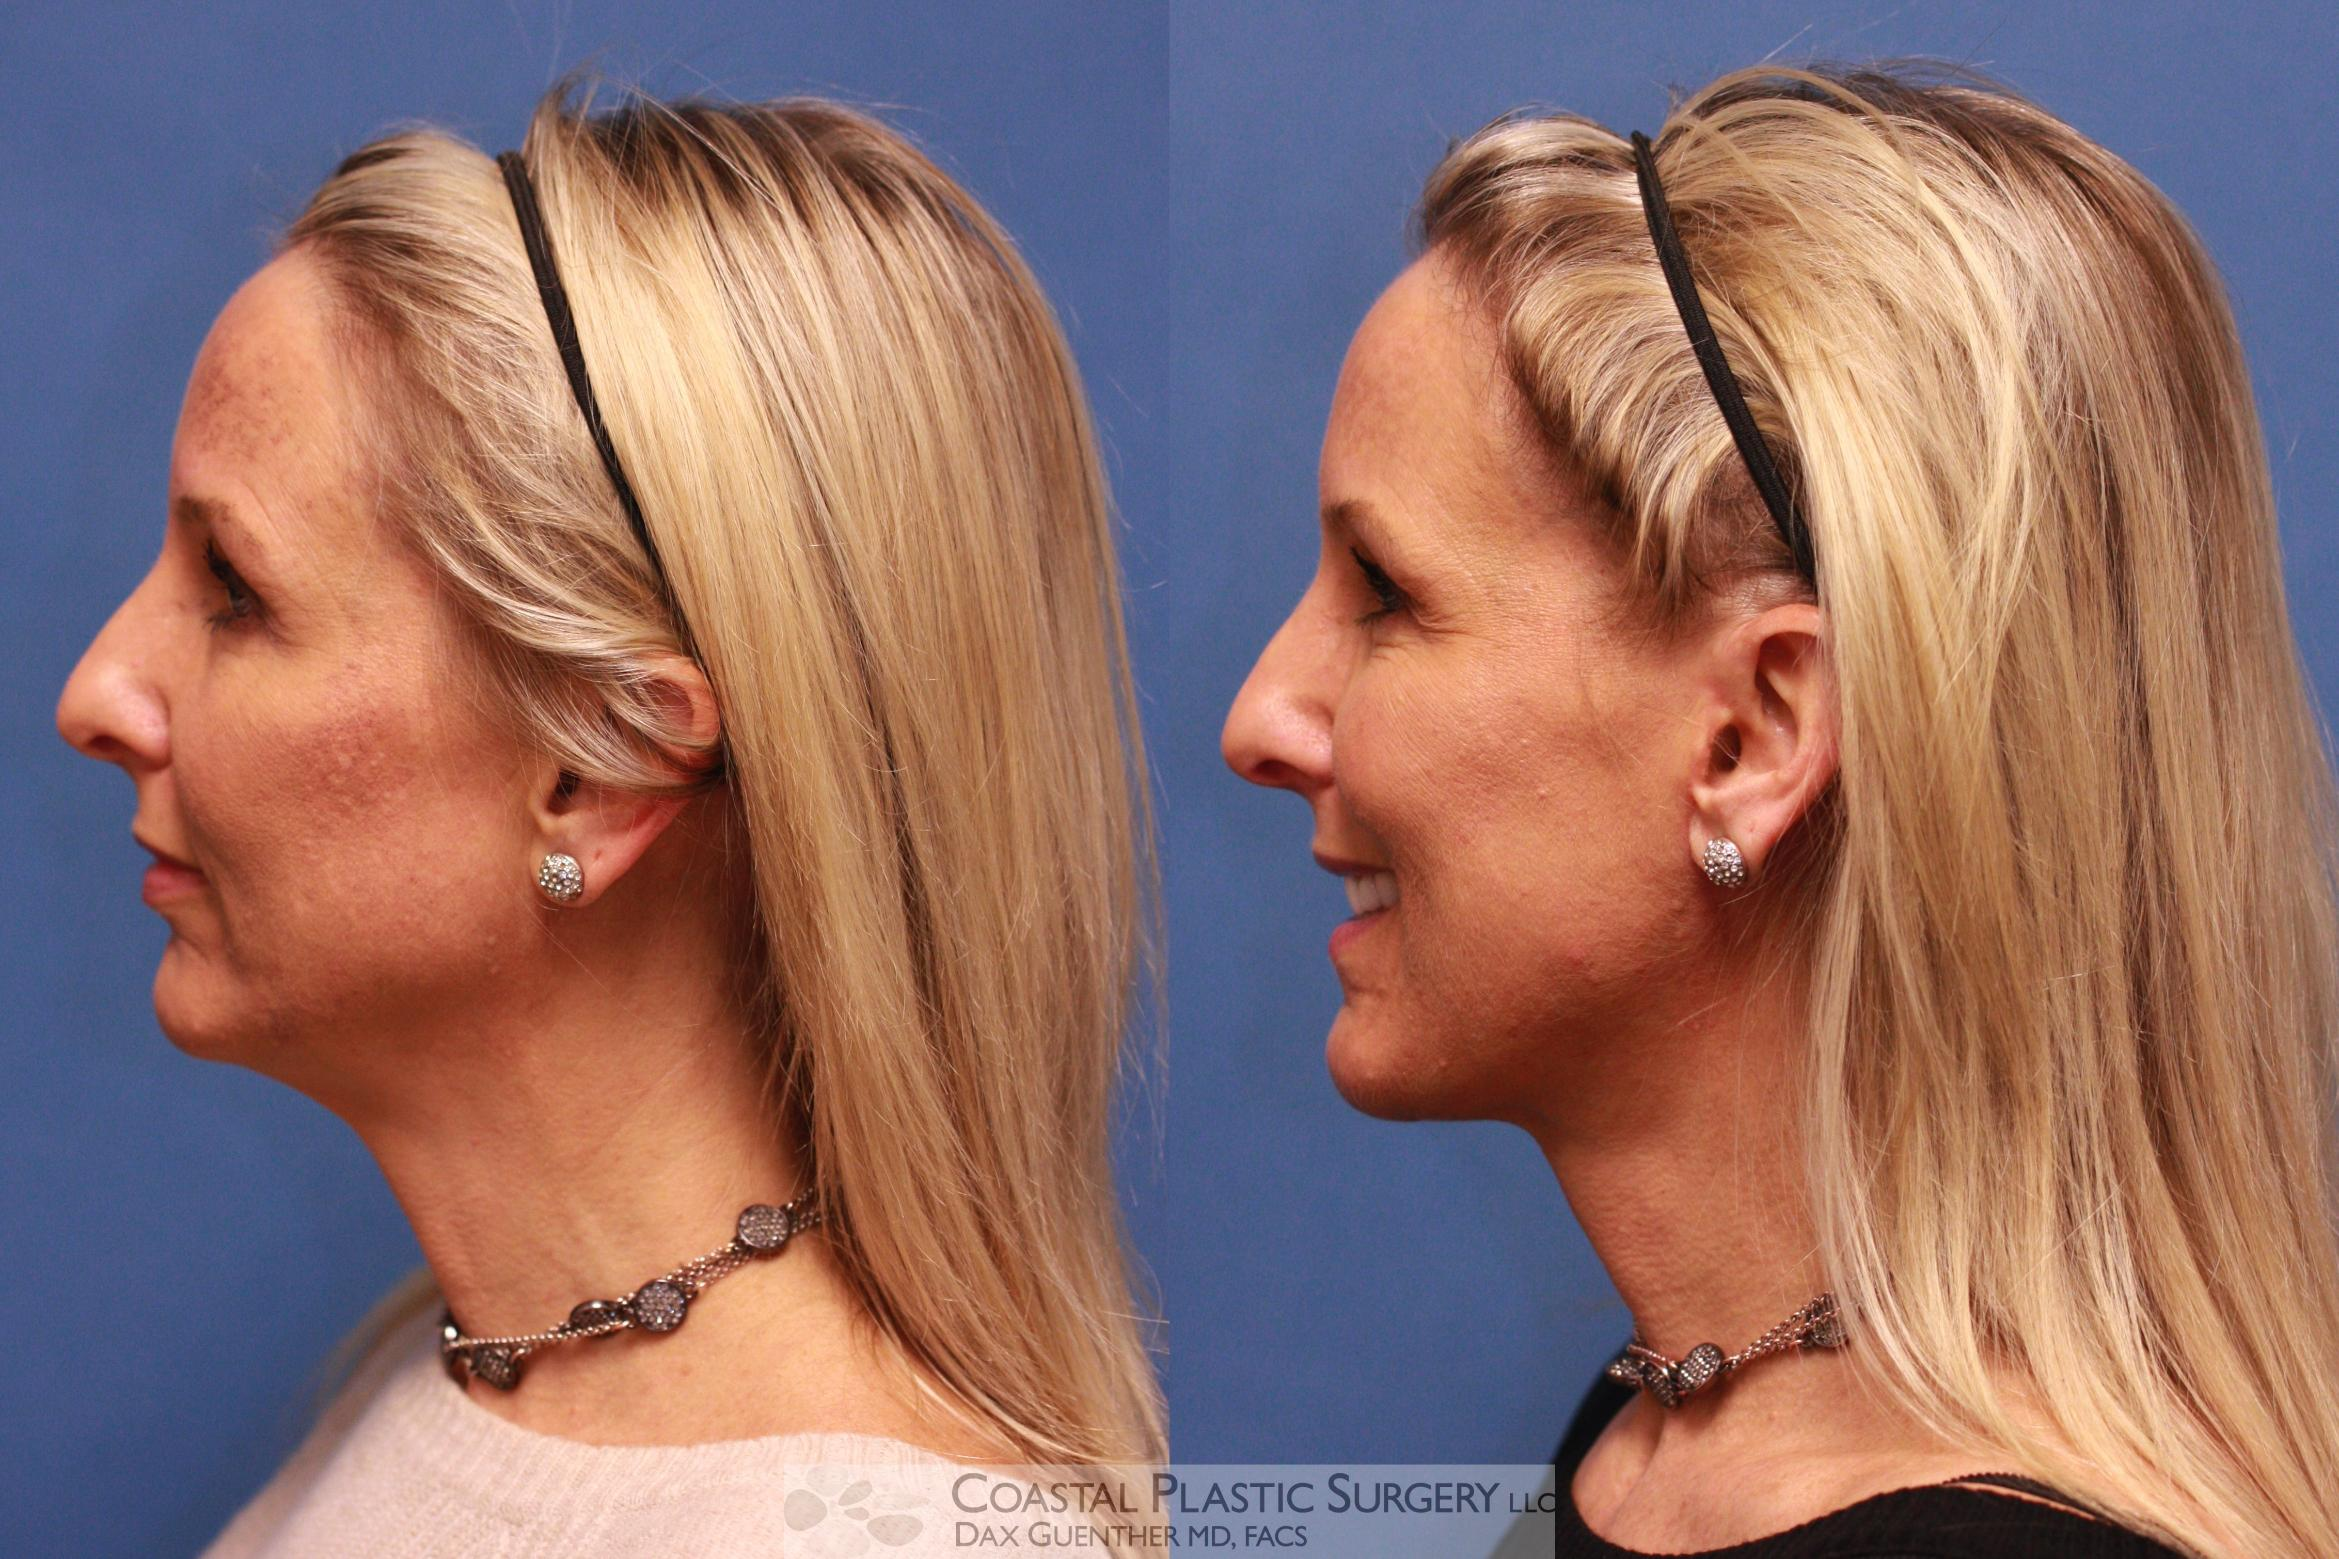 Face/Neck Lift Before & After Photo | Hingham, MA | Dax Guenther, MD: Coastal Plastic Surgery